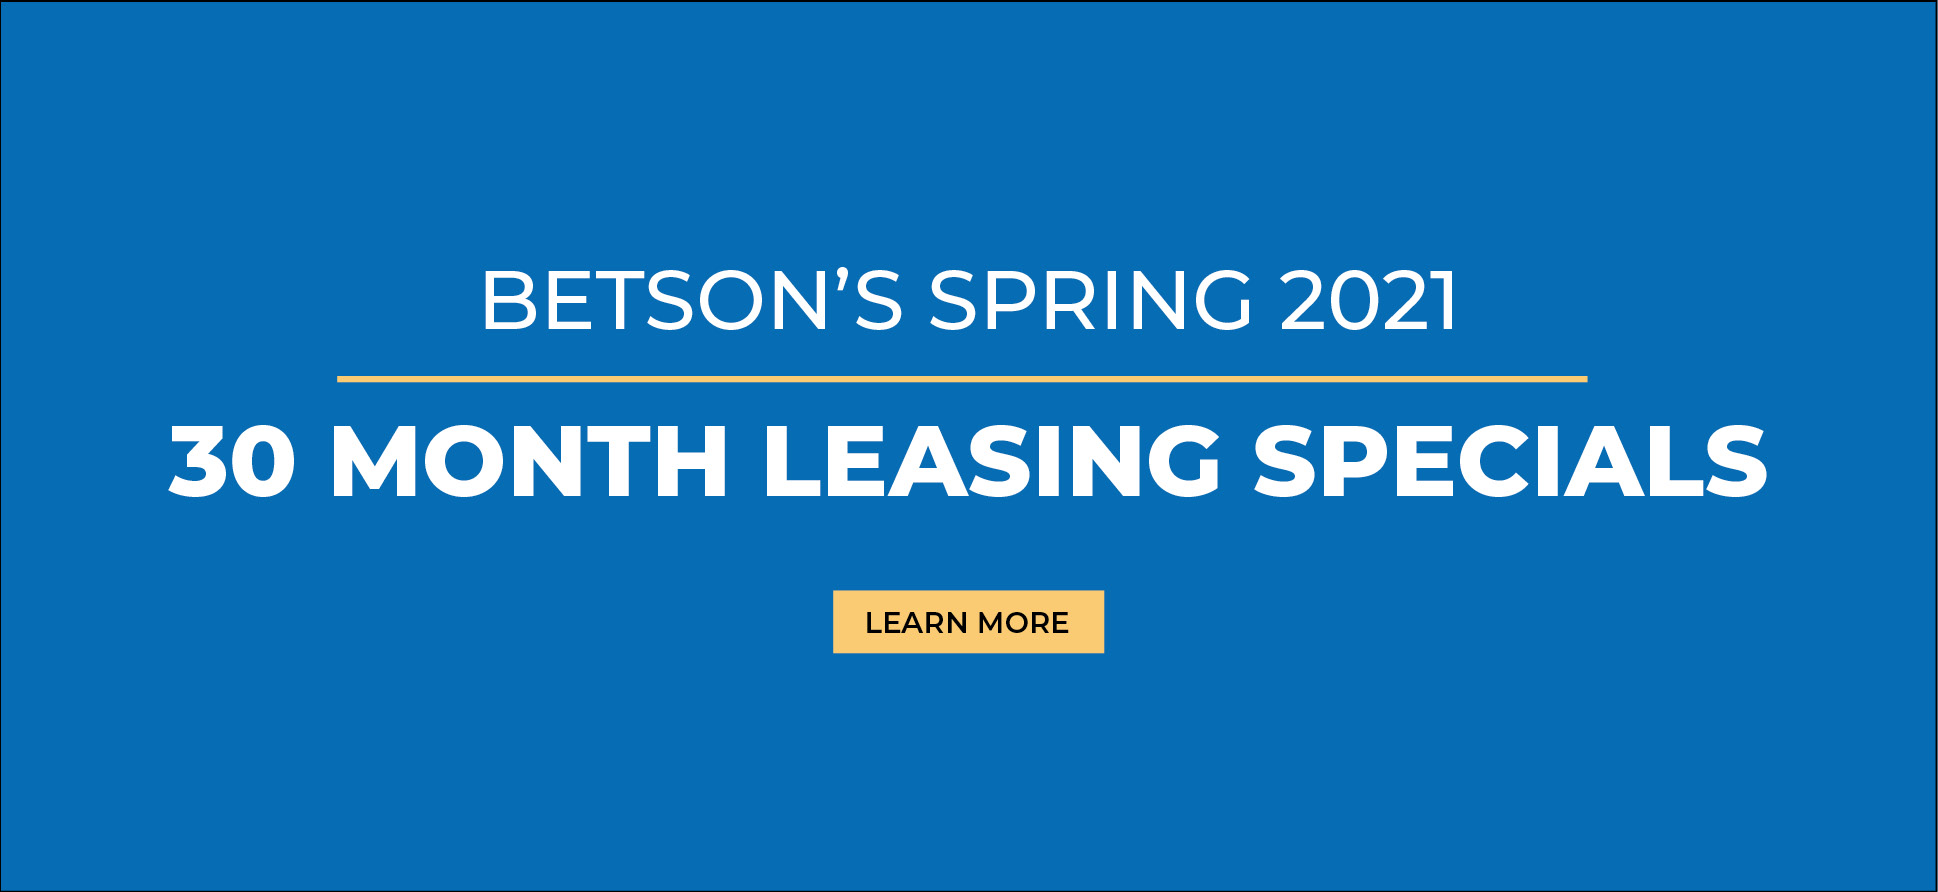 Betson's Spring 2021 30 Month Leasing Specials Banner